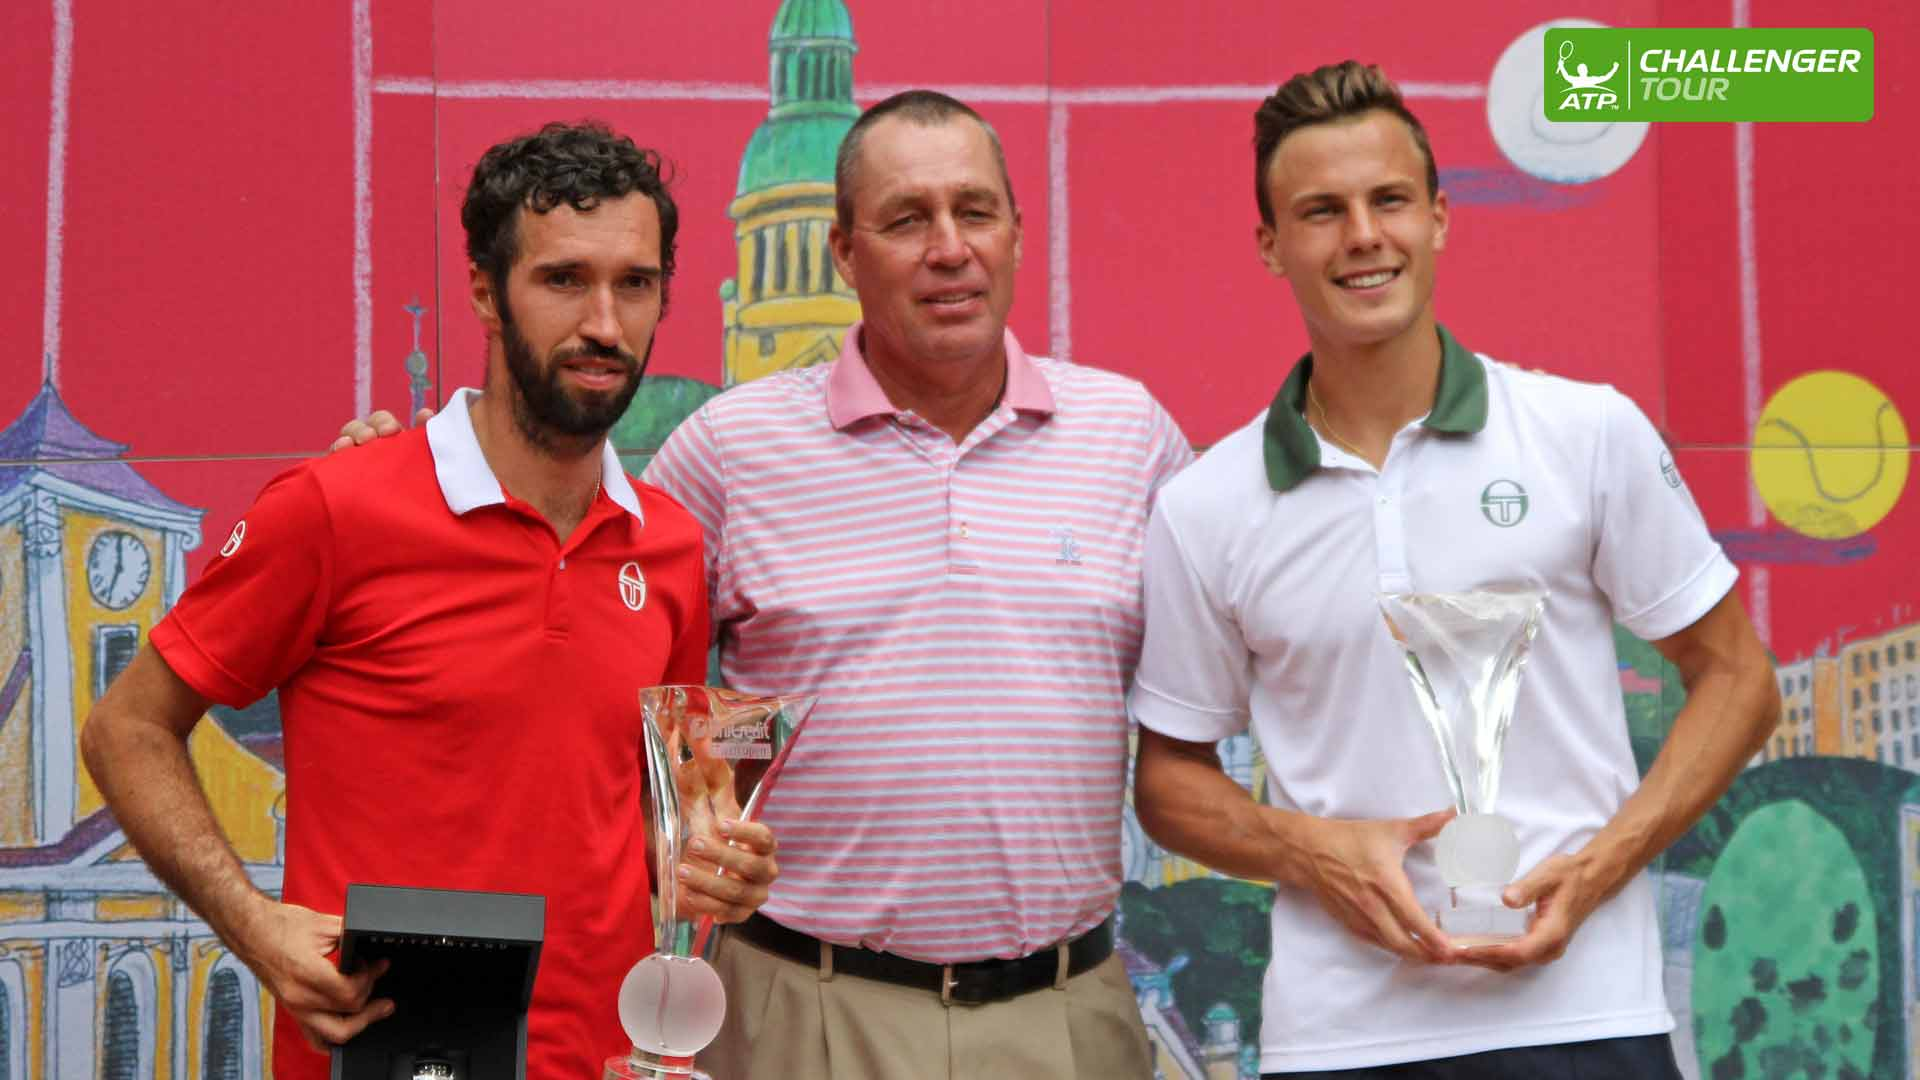 Ivan Lendl presents Mikhail Kukushin (L) and Martin Fucsovics with their trophies in Prostejov.